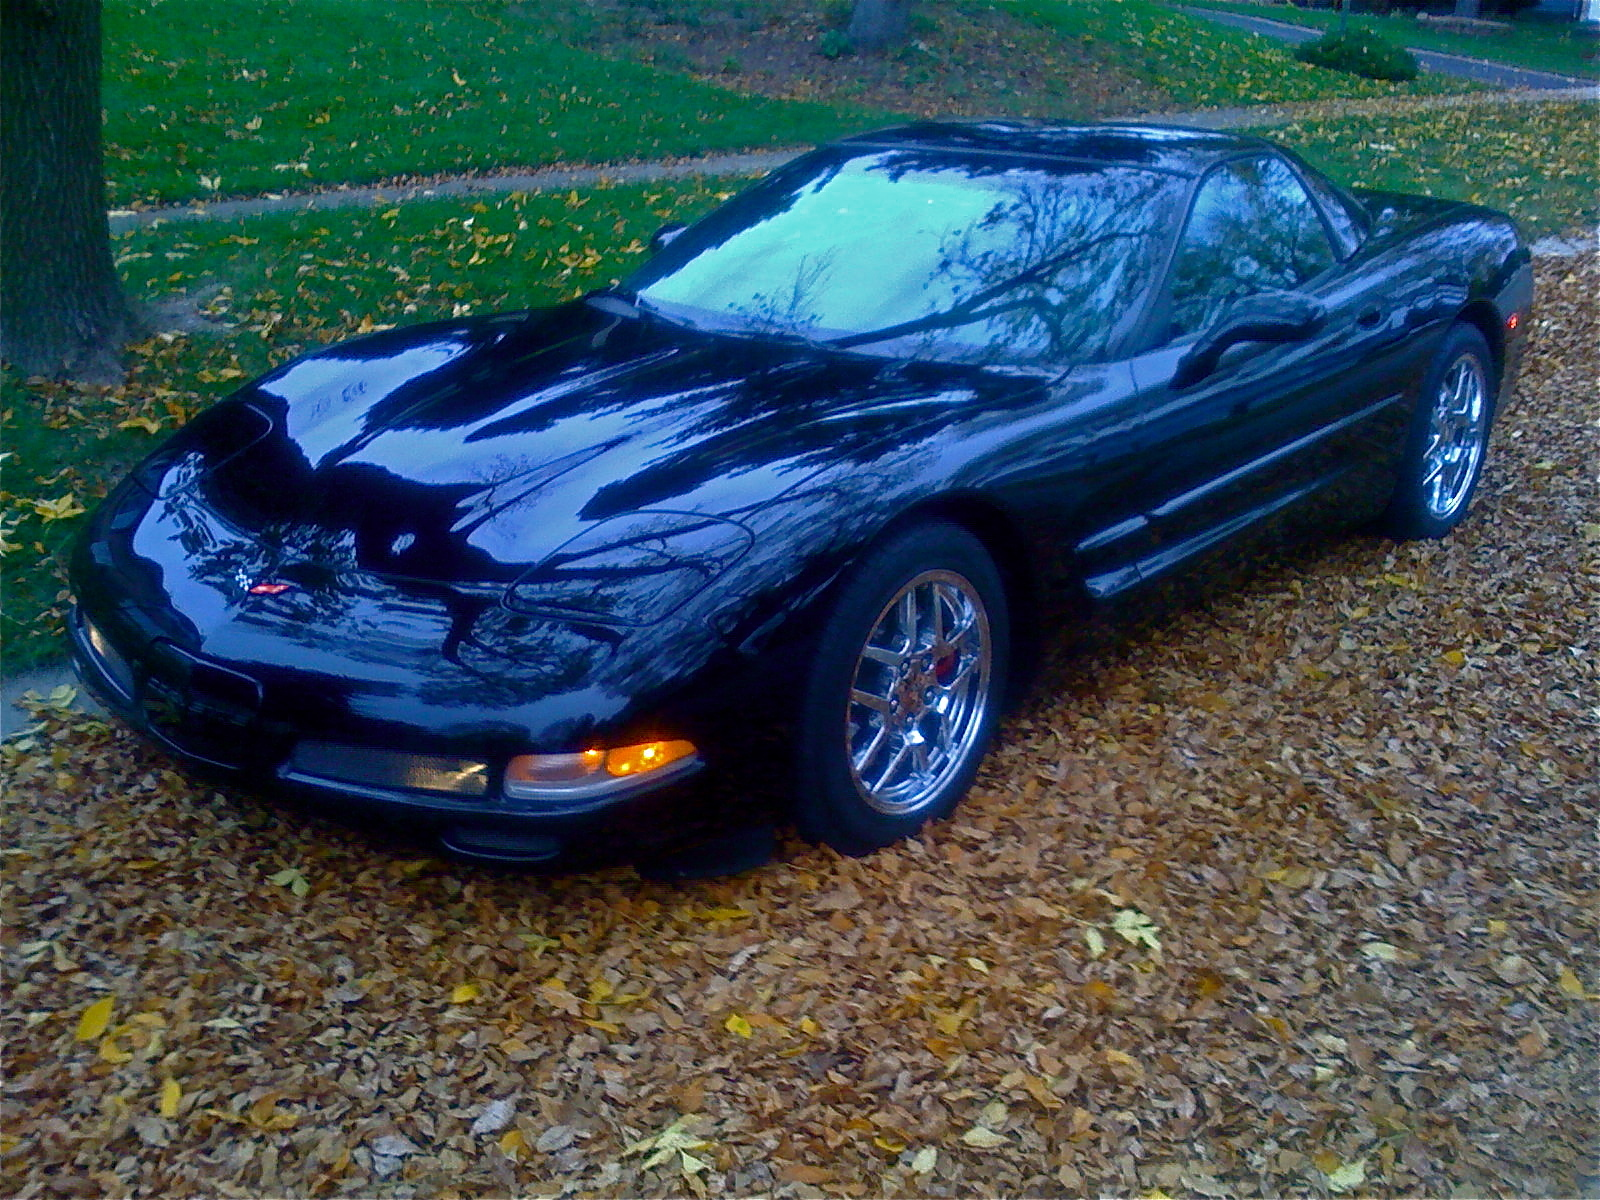 johnsos30's 1999 Chevrolet Corvette